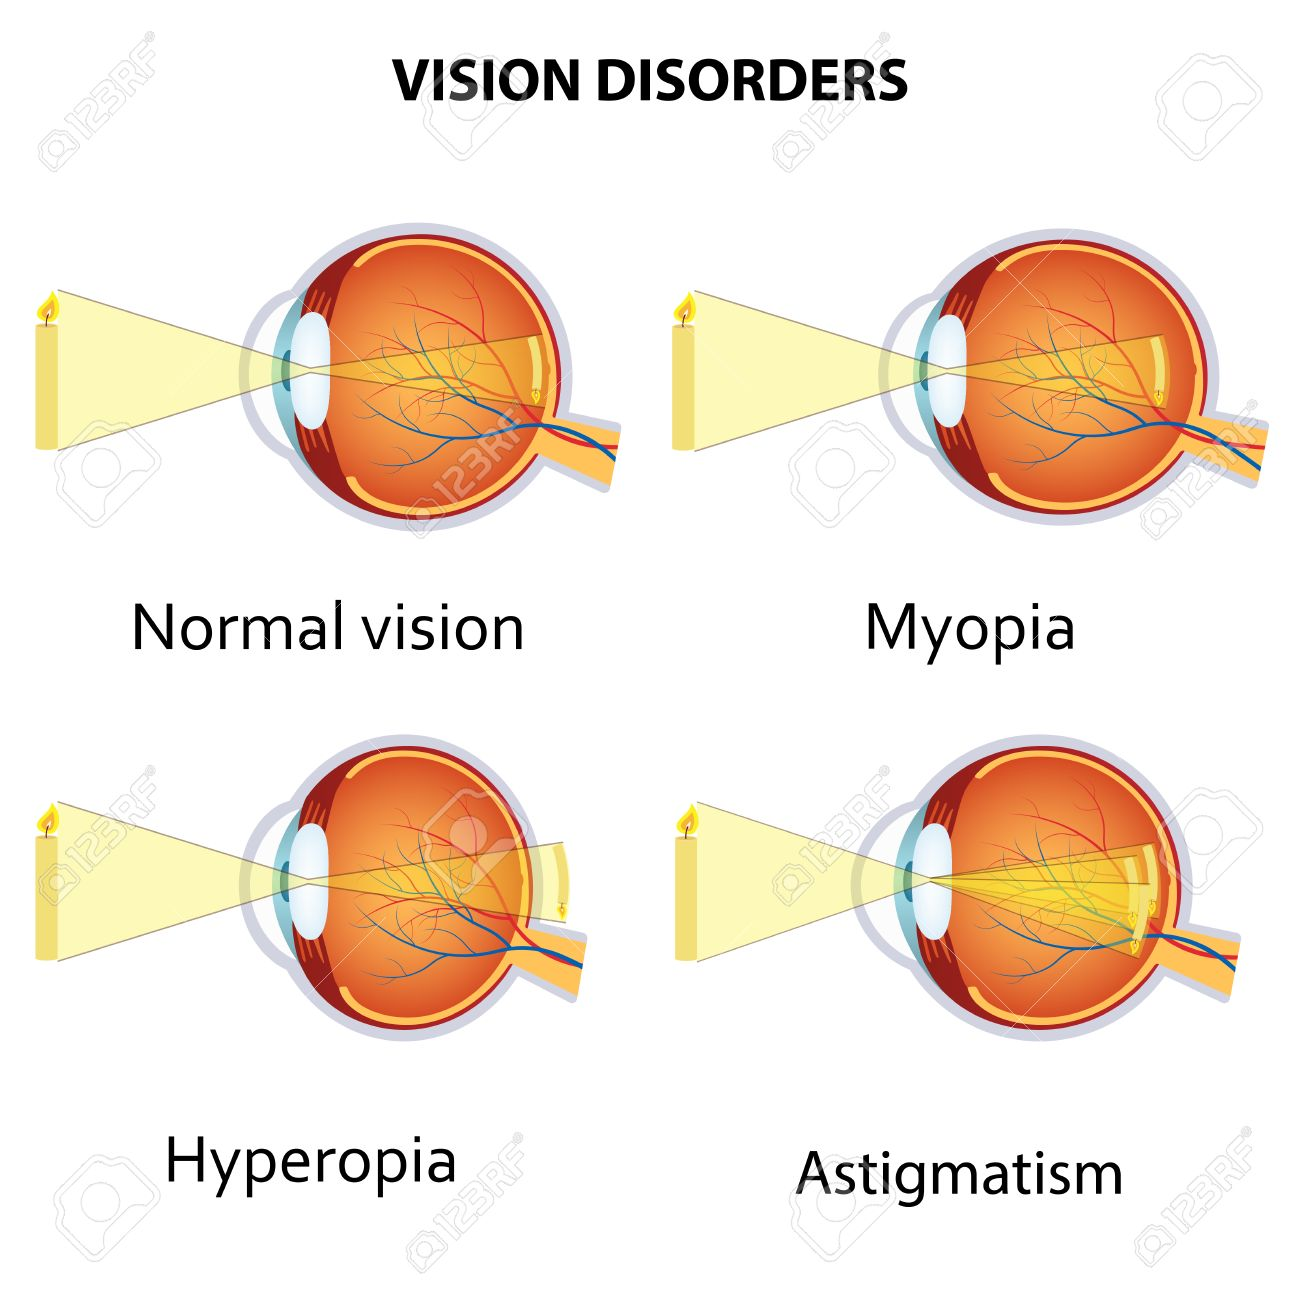 23c1a54948d4 Common Vision Disorders. Astigmatism